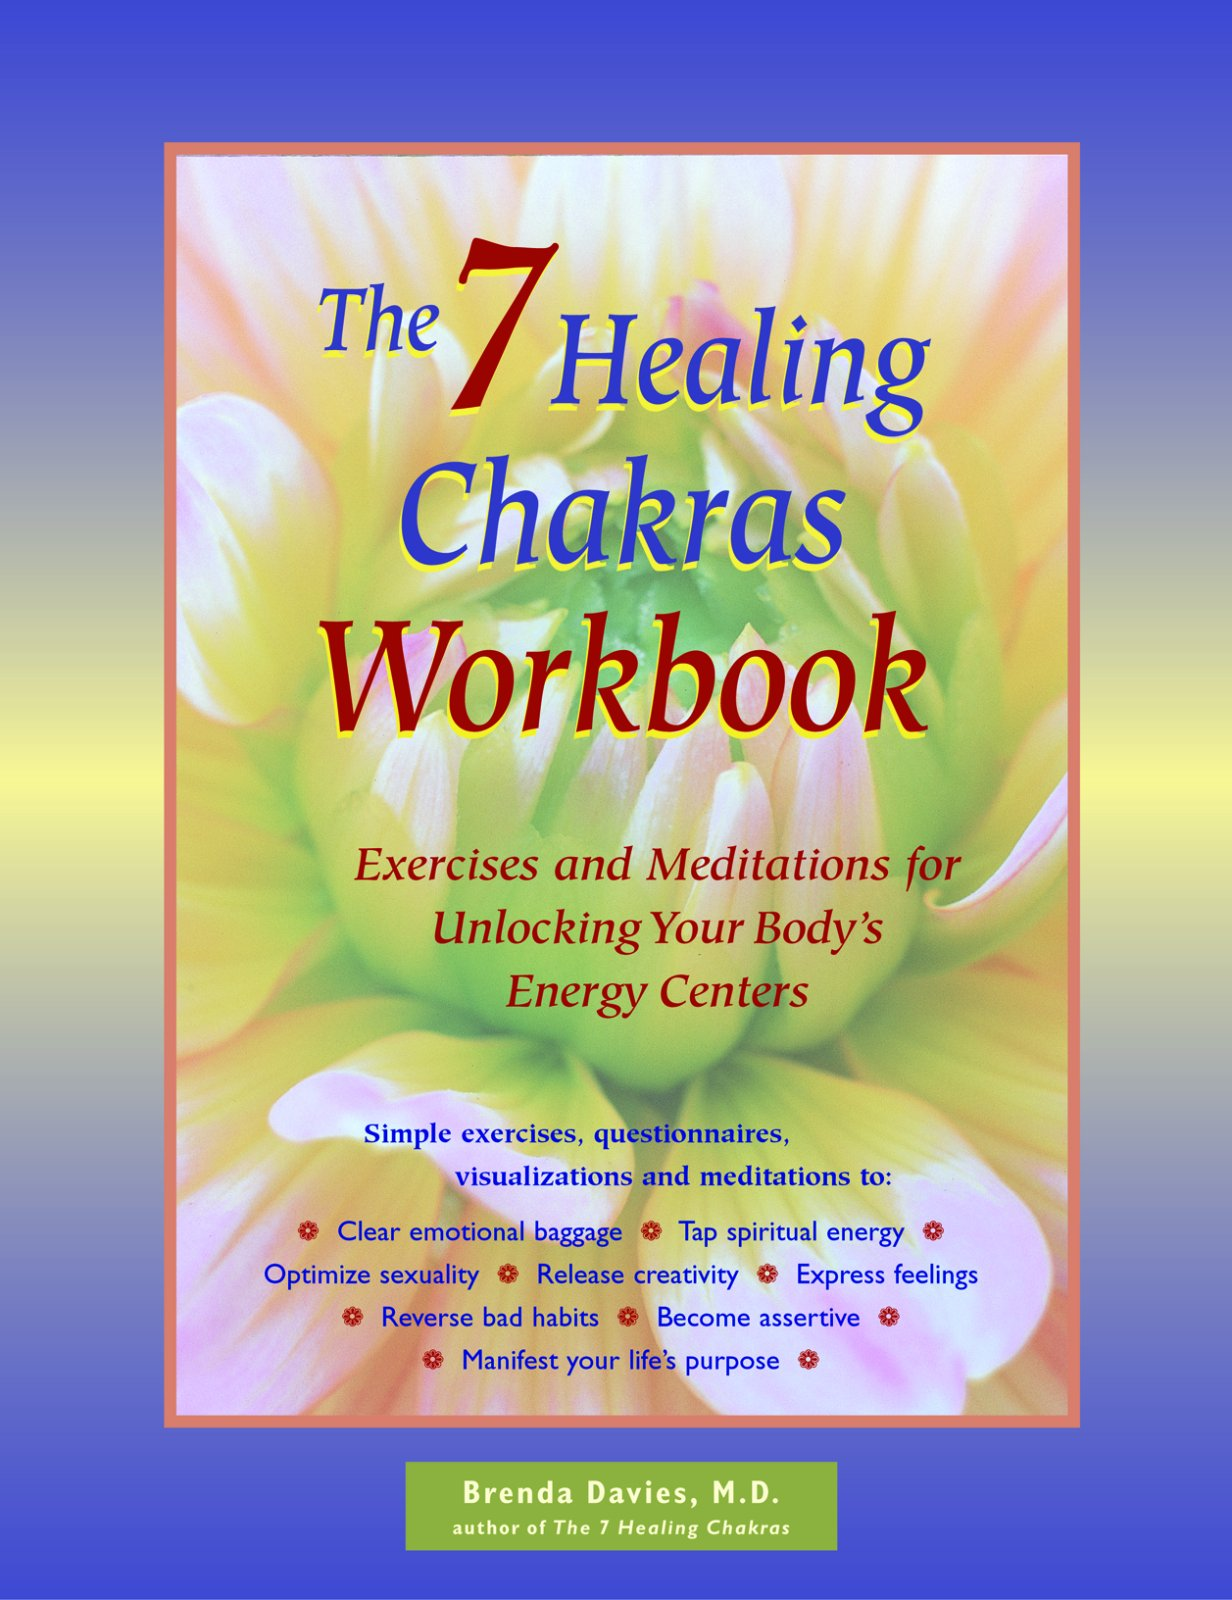 The 7 Healing Chakras Workbook: Exercises and Meditations for Unlocking  Your Body's Energy Centers: M.D. Brenda Davies: 9781569753675: Amazon.com:  Books